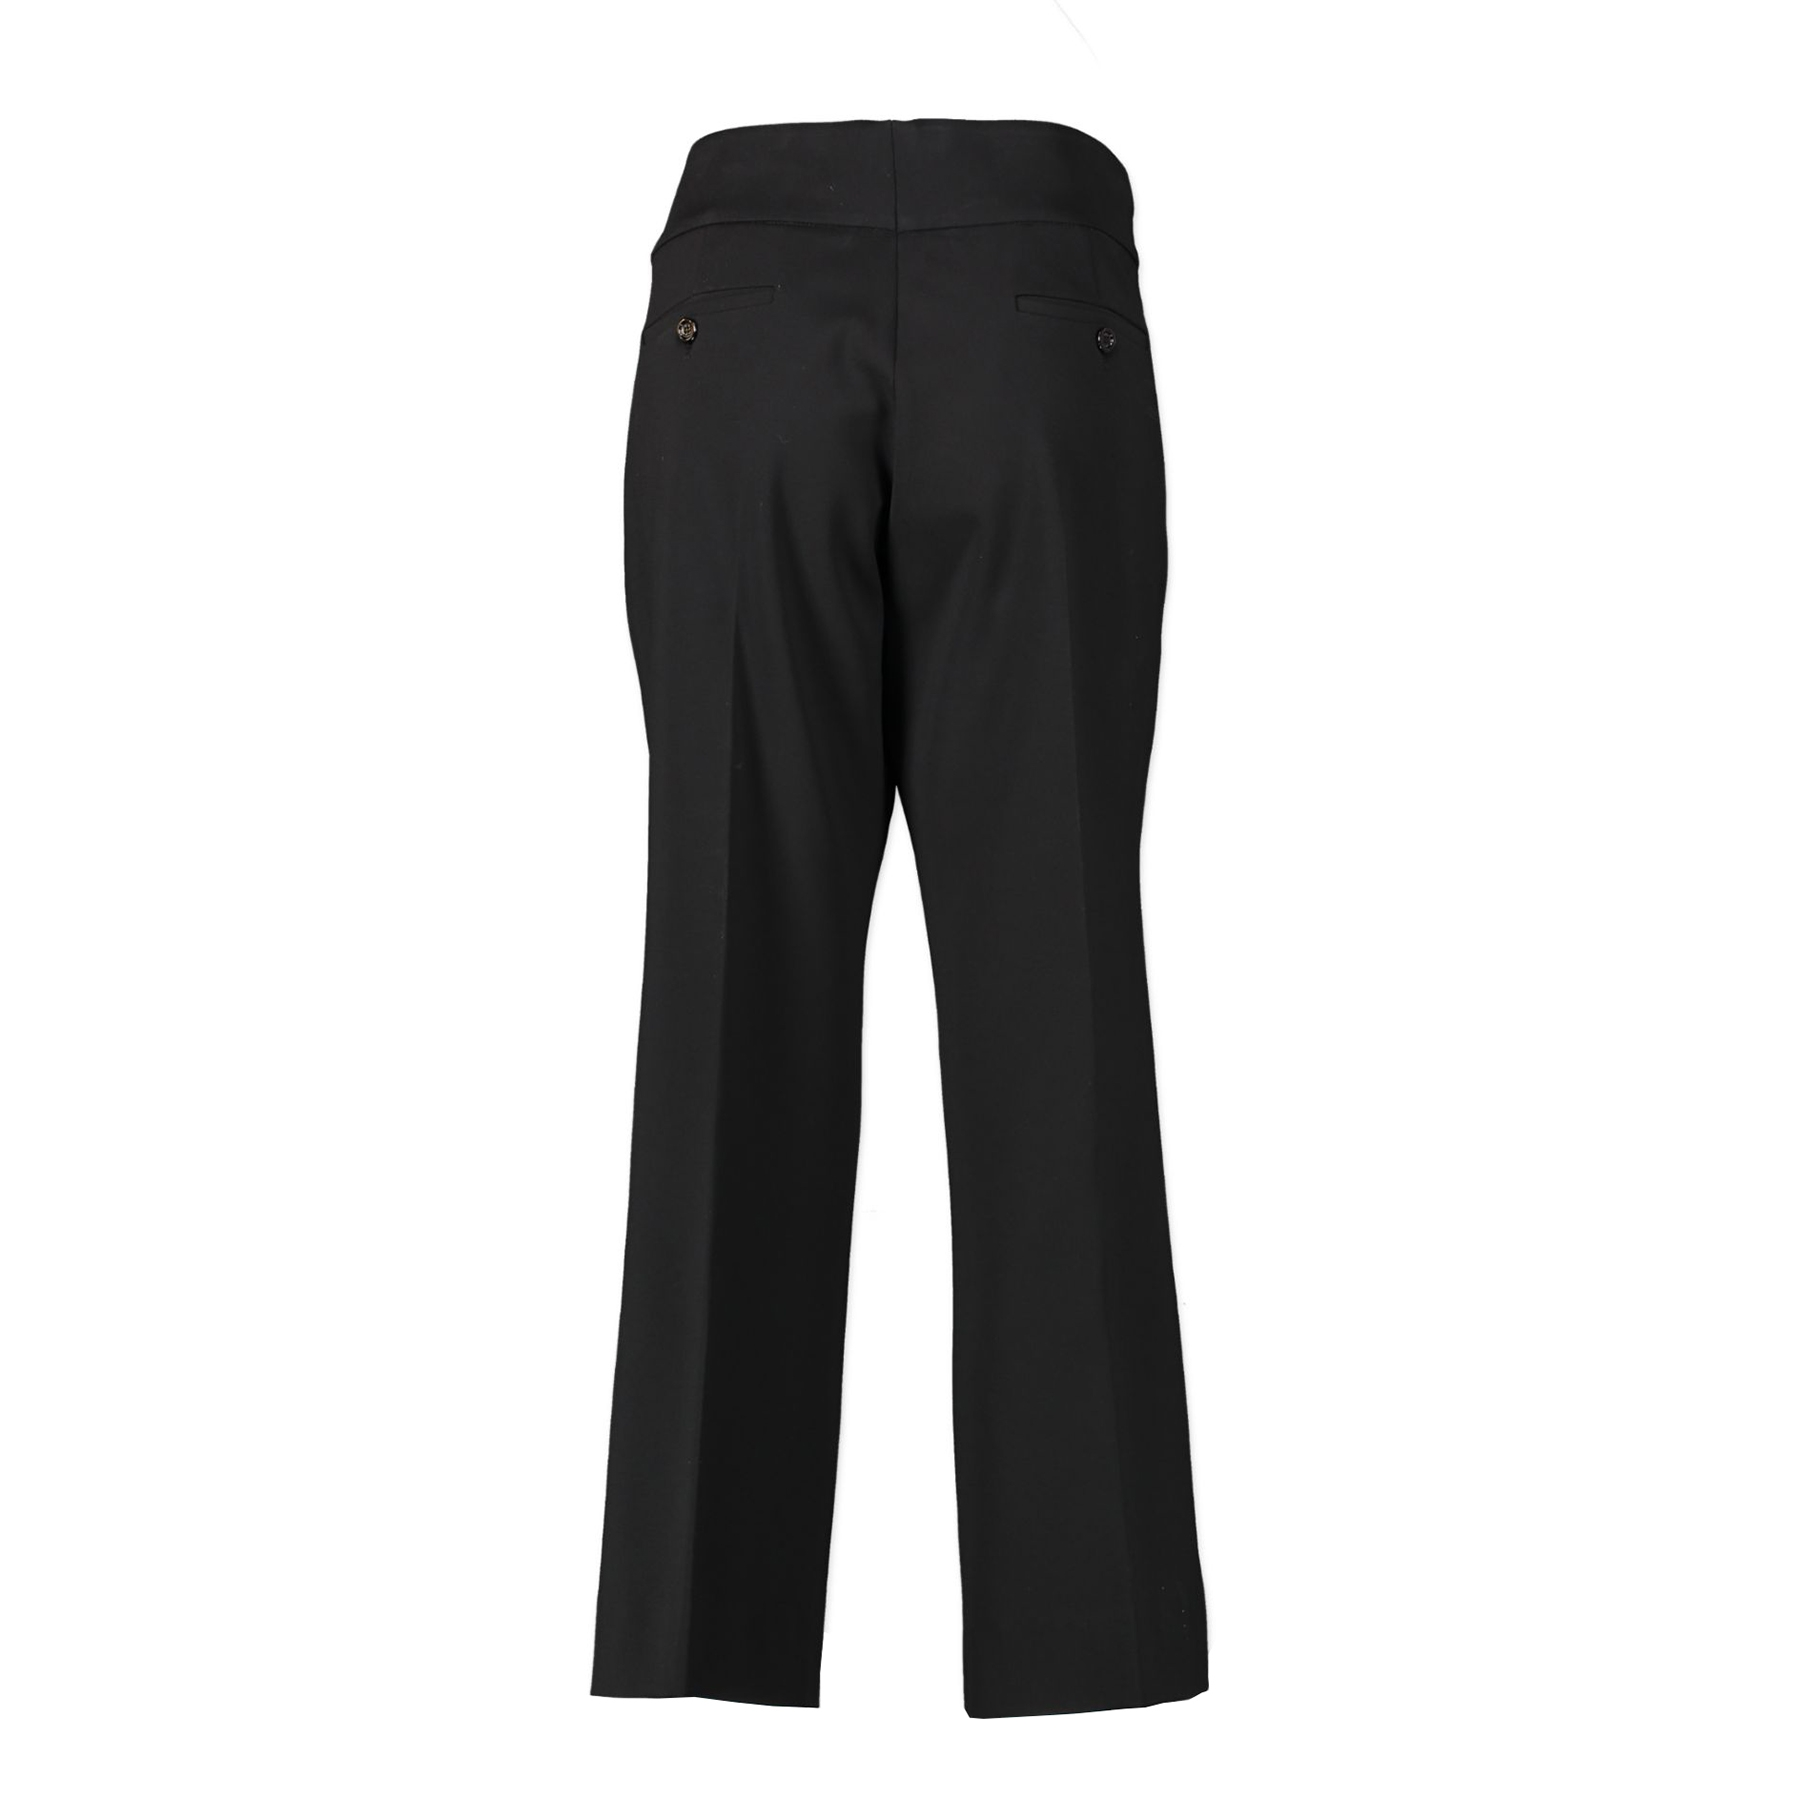 Authentic second-hand vintage Gucci GG Flared Black Trousers - Size IT48 buy online webshop LabelLOV